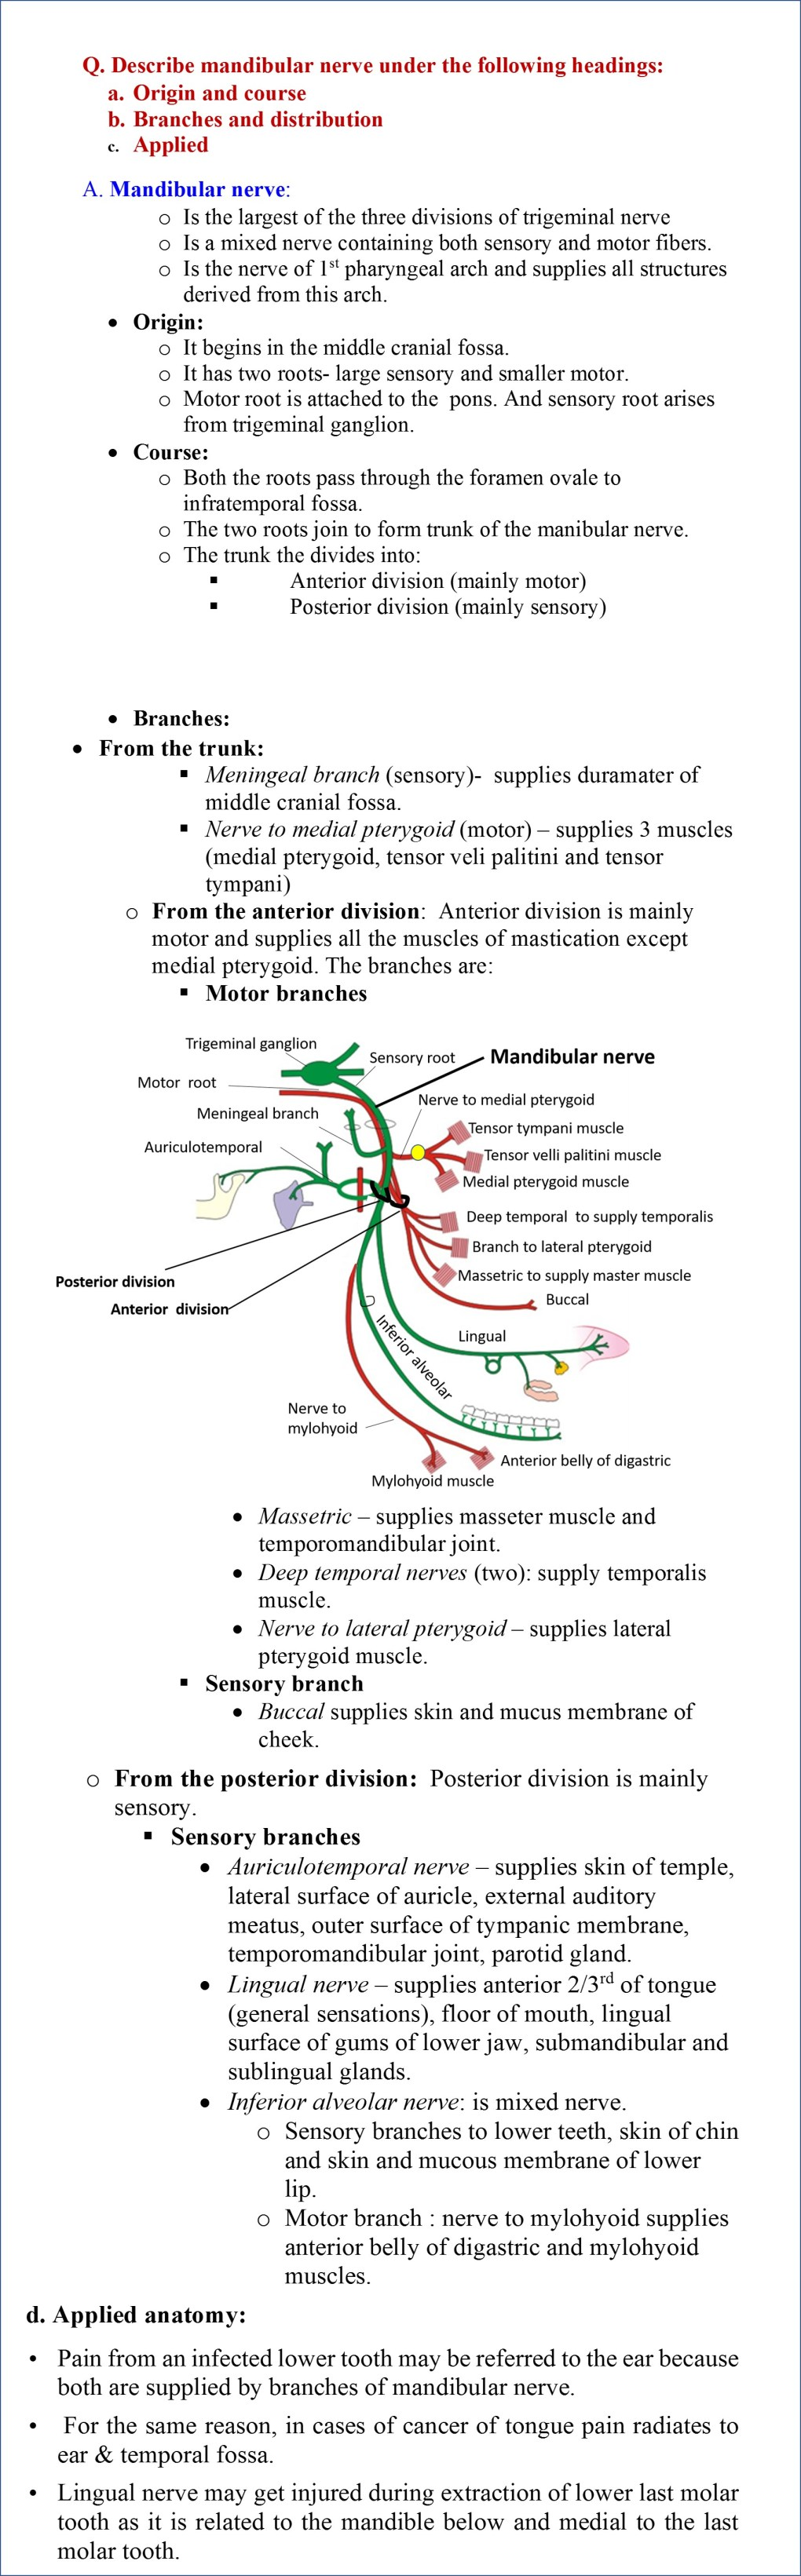 Mandibular nerve - course, branches and distribution